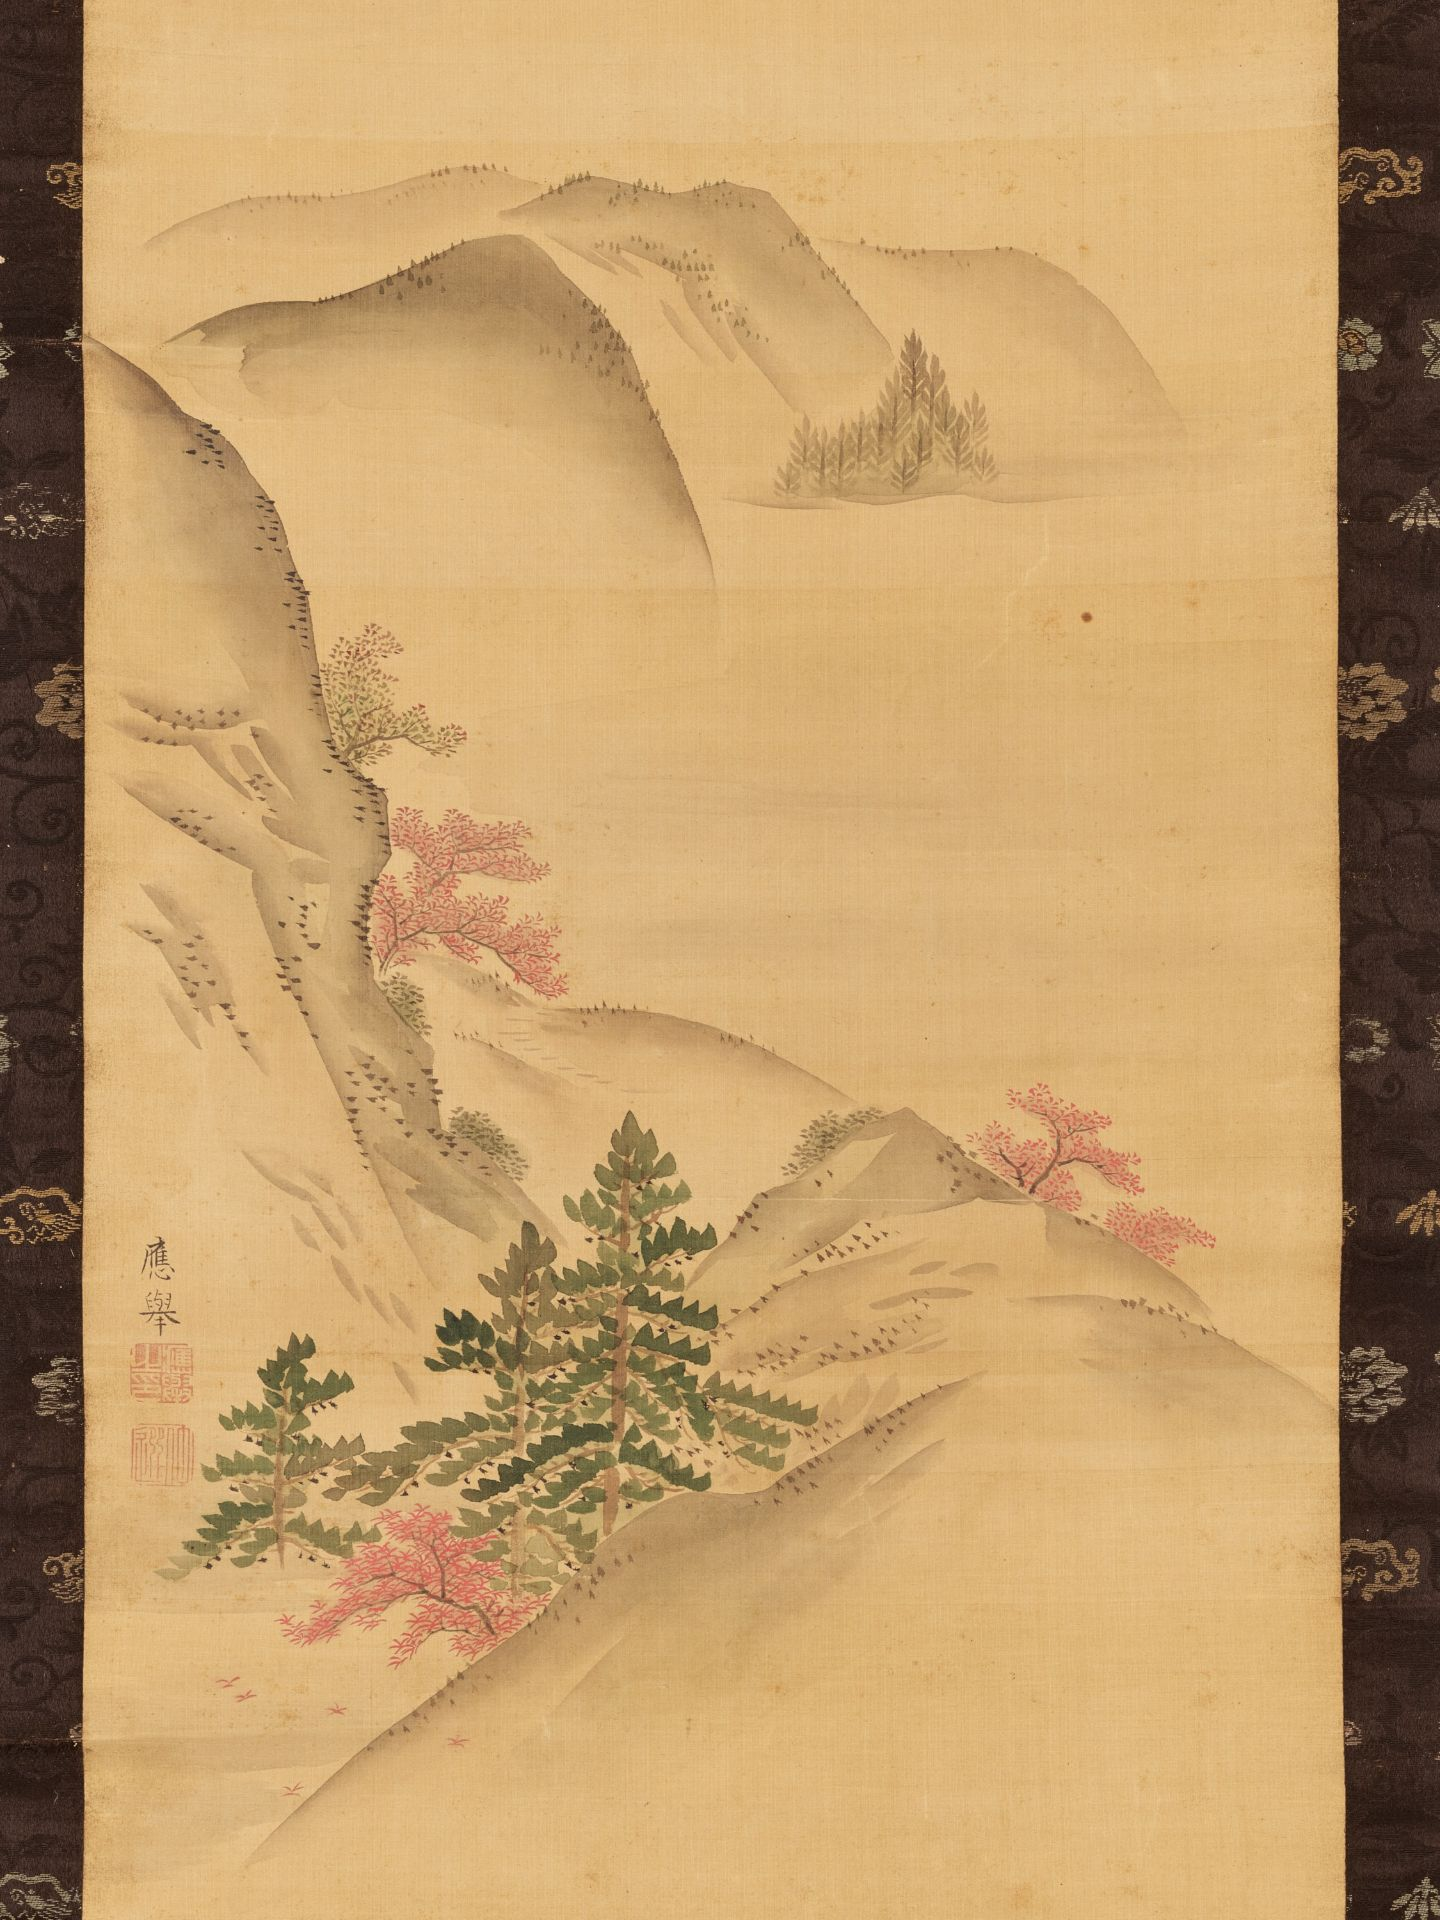 MARUYAMA OKYO: A SCROLL PAINTING OF A HILLY LANDSCAPE - Image 3 of 6